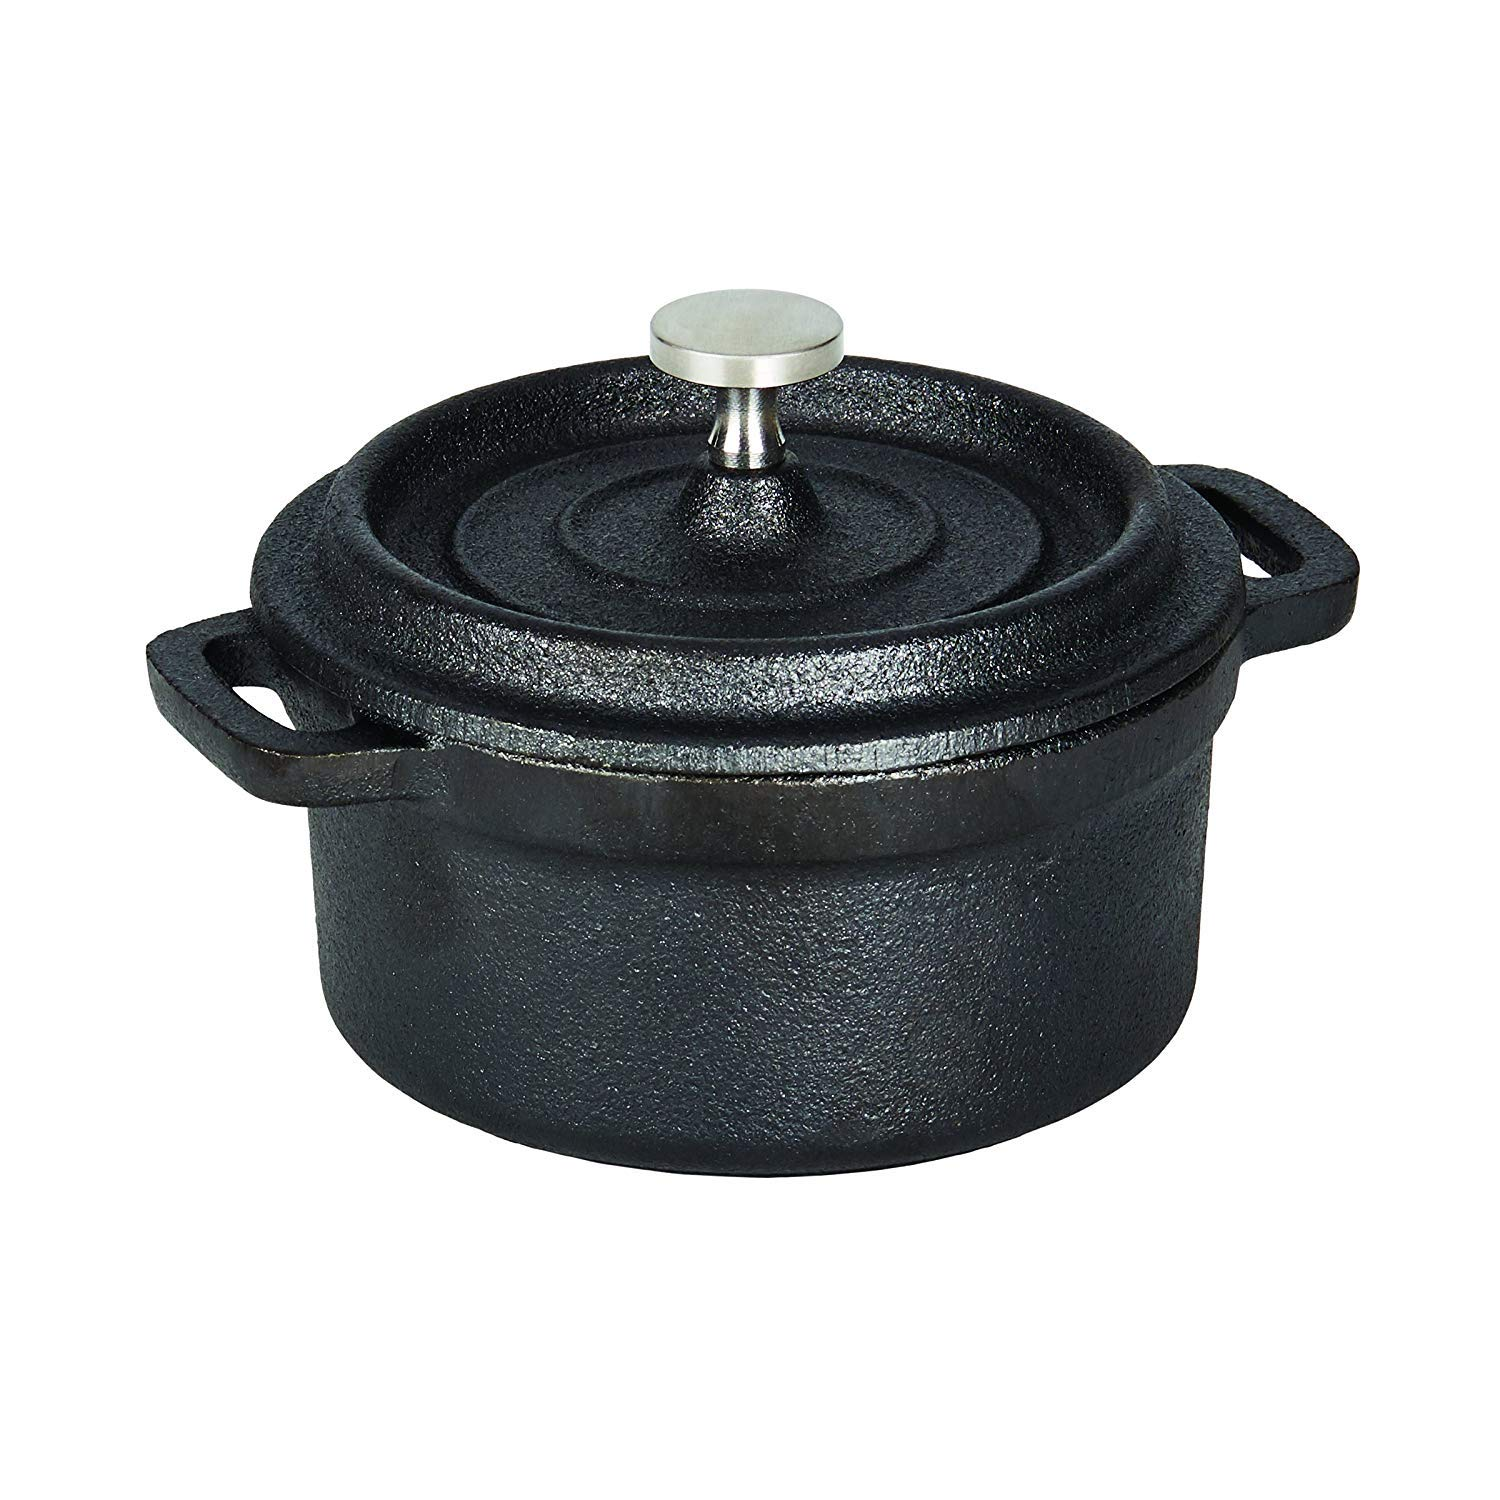 Casamoda 5178394 Pre-Seasoned Cast Iron Mini Pot with Lid, 5-Inch